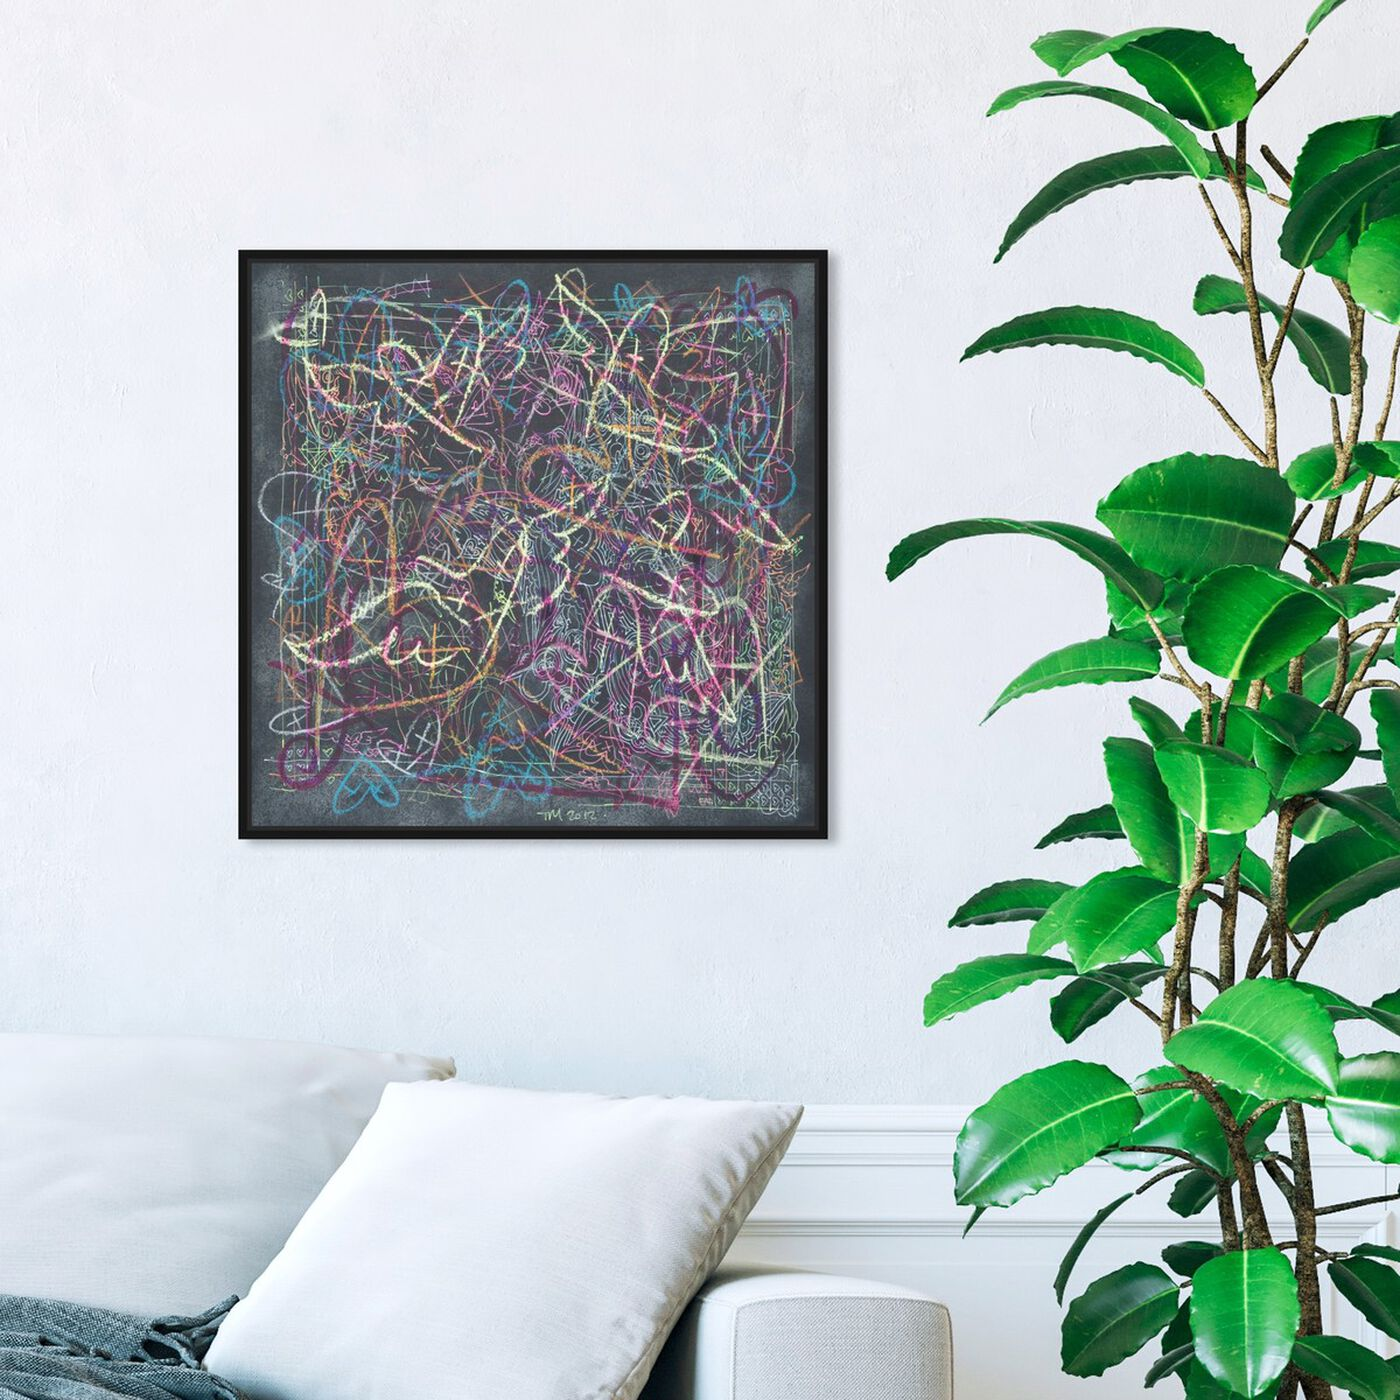 Hanging view of Mistura by Tiago Magro featuring abstract and textures art.